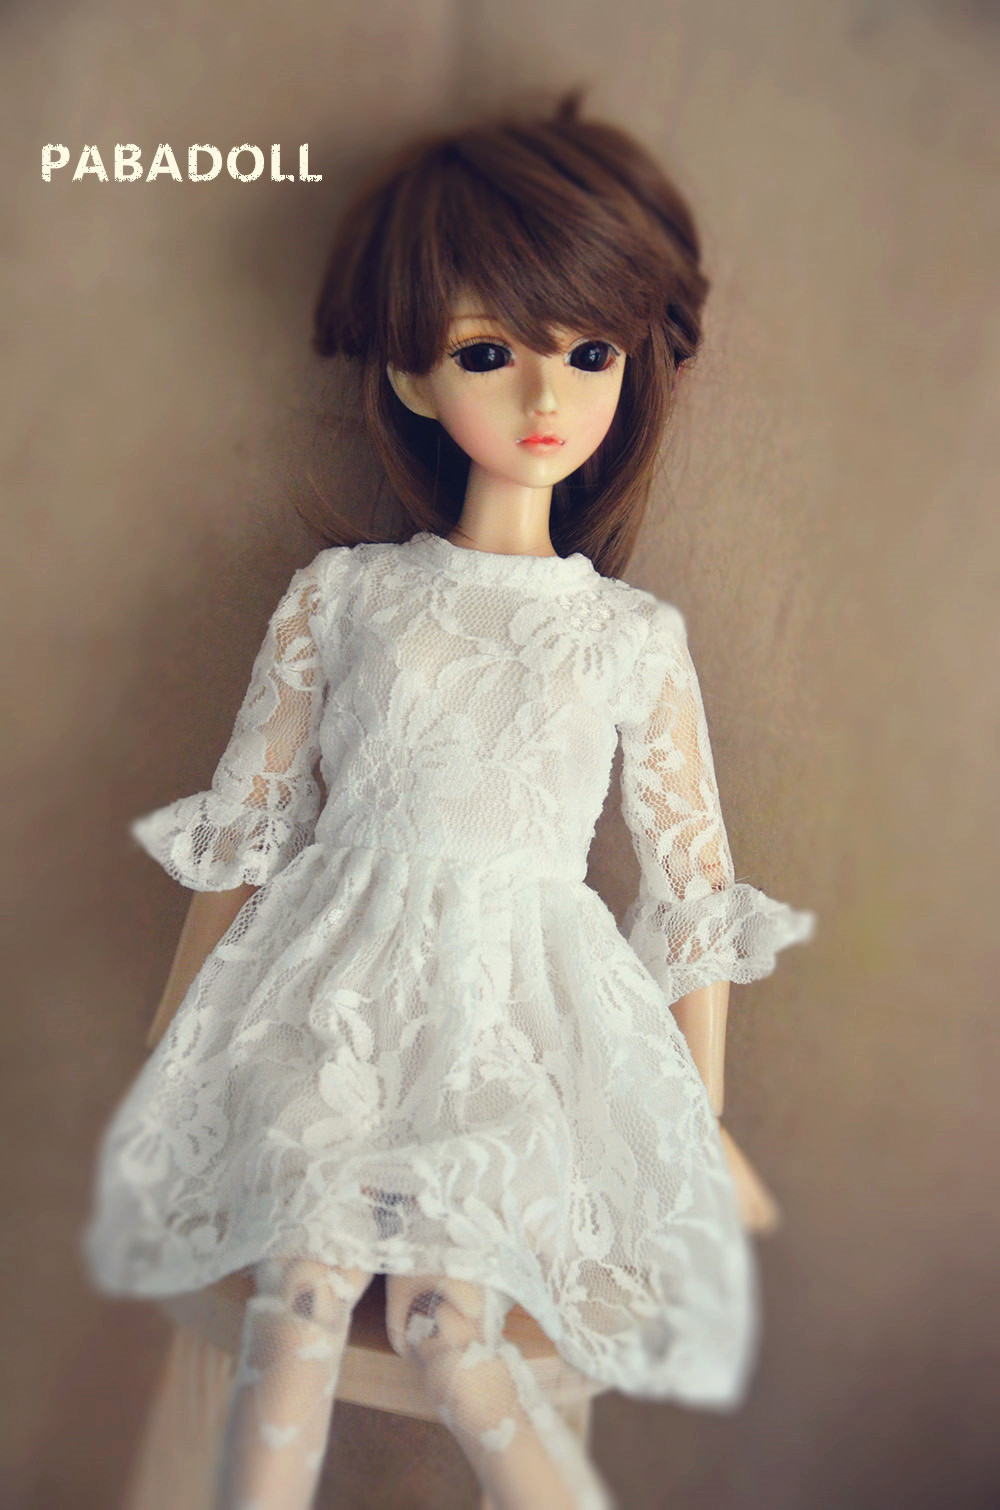 Pretty White Lace Dress For BJD Doll 1/6 YOSD 1/4 MSD,1/3 SD16 DD Luts DOD AS DZ Doll Clothes CWB96 new bjd doll jeans lace dress for bjd doll 1 6yosd 1 4 msd 1 3 sd10 sd13 sd16 ip eid luts dod sd doll clothes cwb21